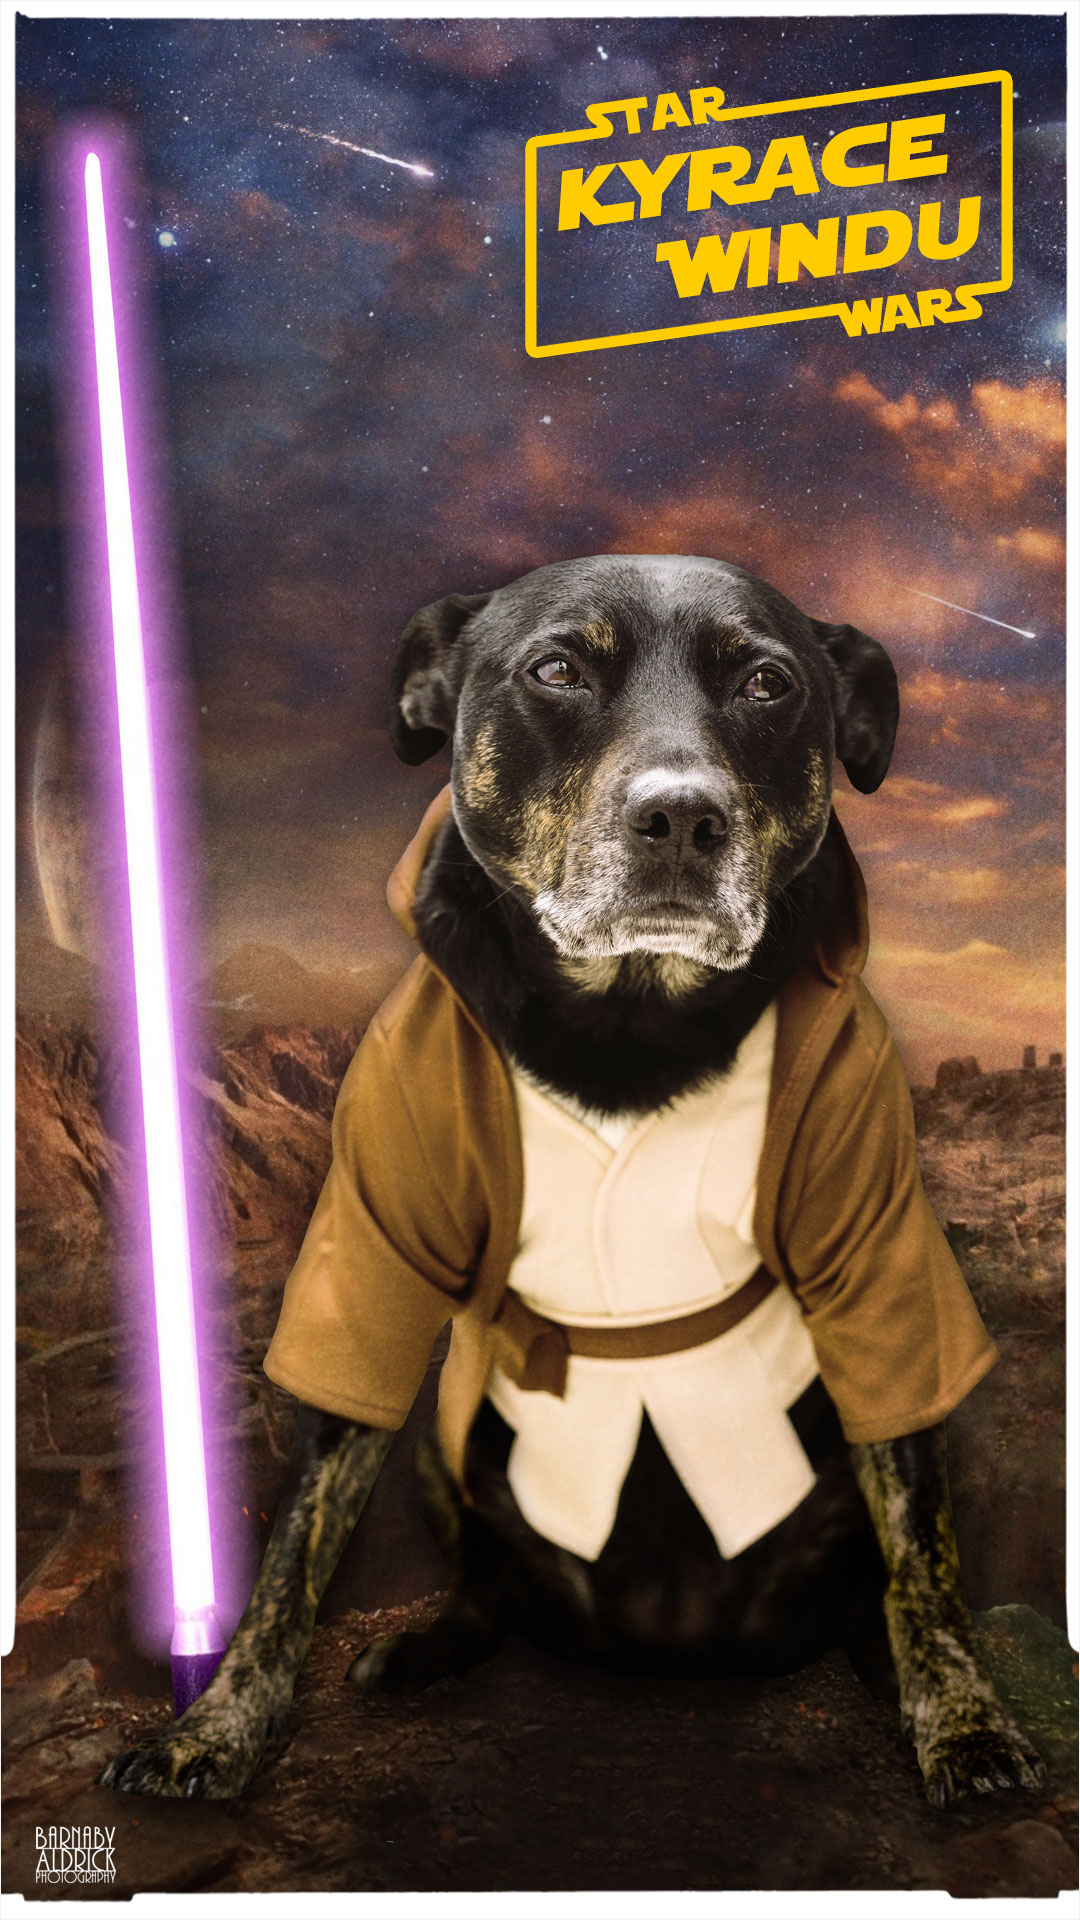 Star Wars Dog Fancy Dress, Pet Star Wars Costume, Mace Windu star wars dog costume